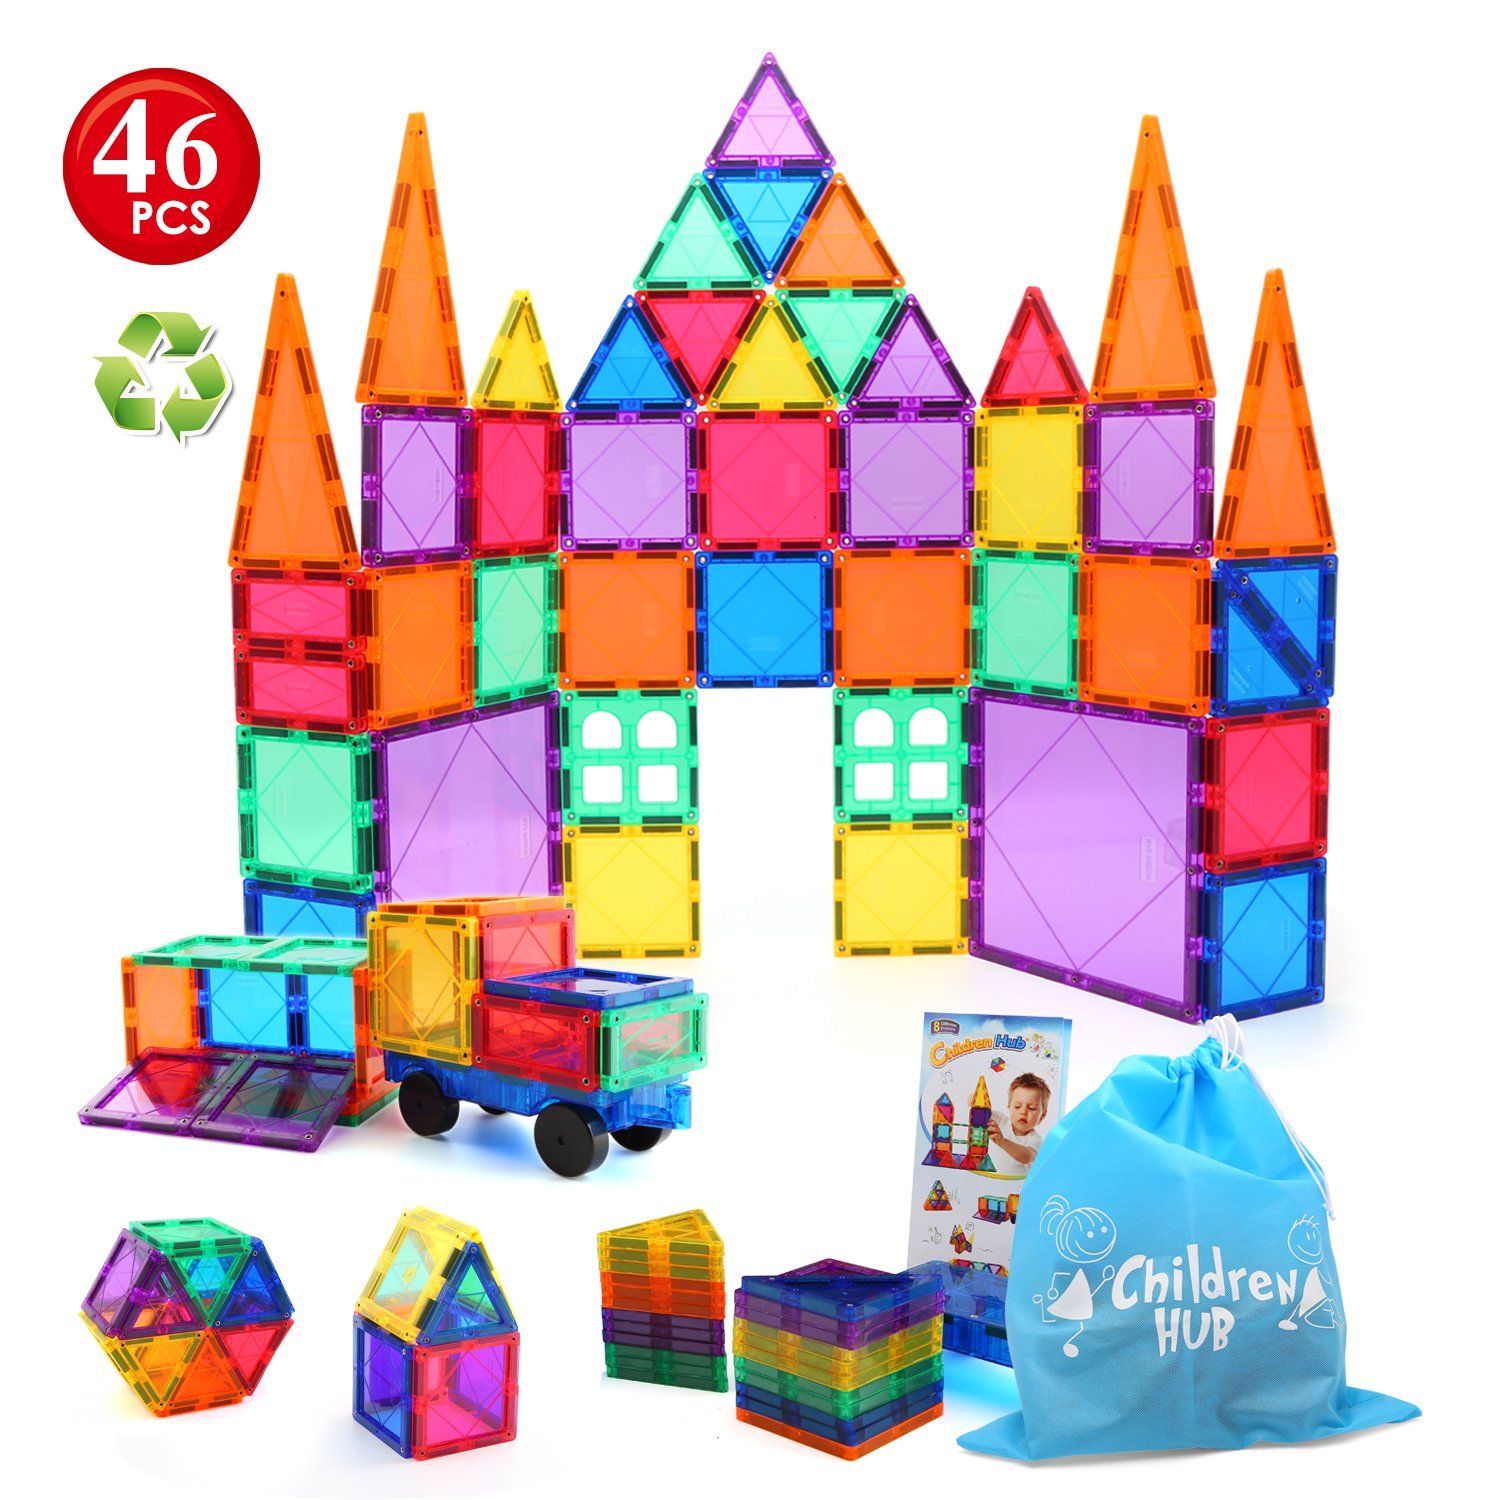 Children Hub 46pcs Magnetic Tiles Set - Educational 3D Magnet Building Blocks - Building Construction Toys for Kids - Upgraded Version with Strong Magnets - Creativity, Imagination, Inspiration by Children Hub